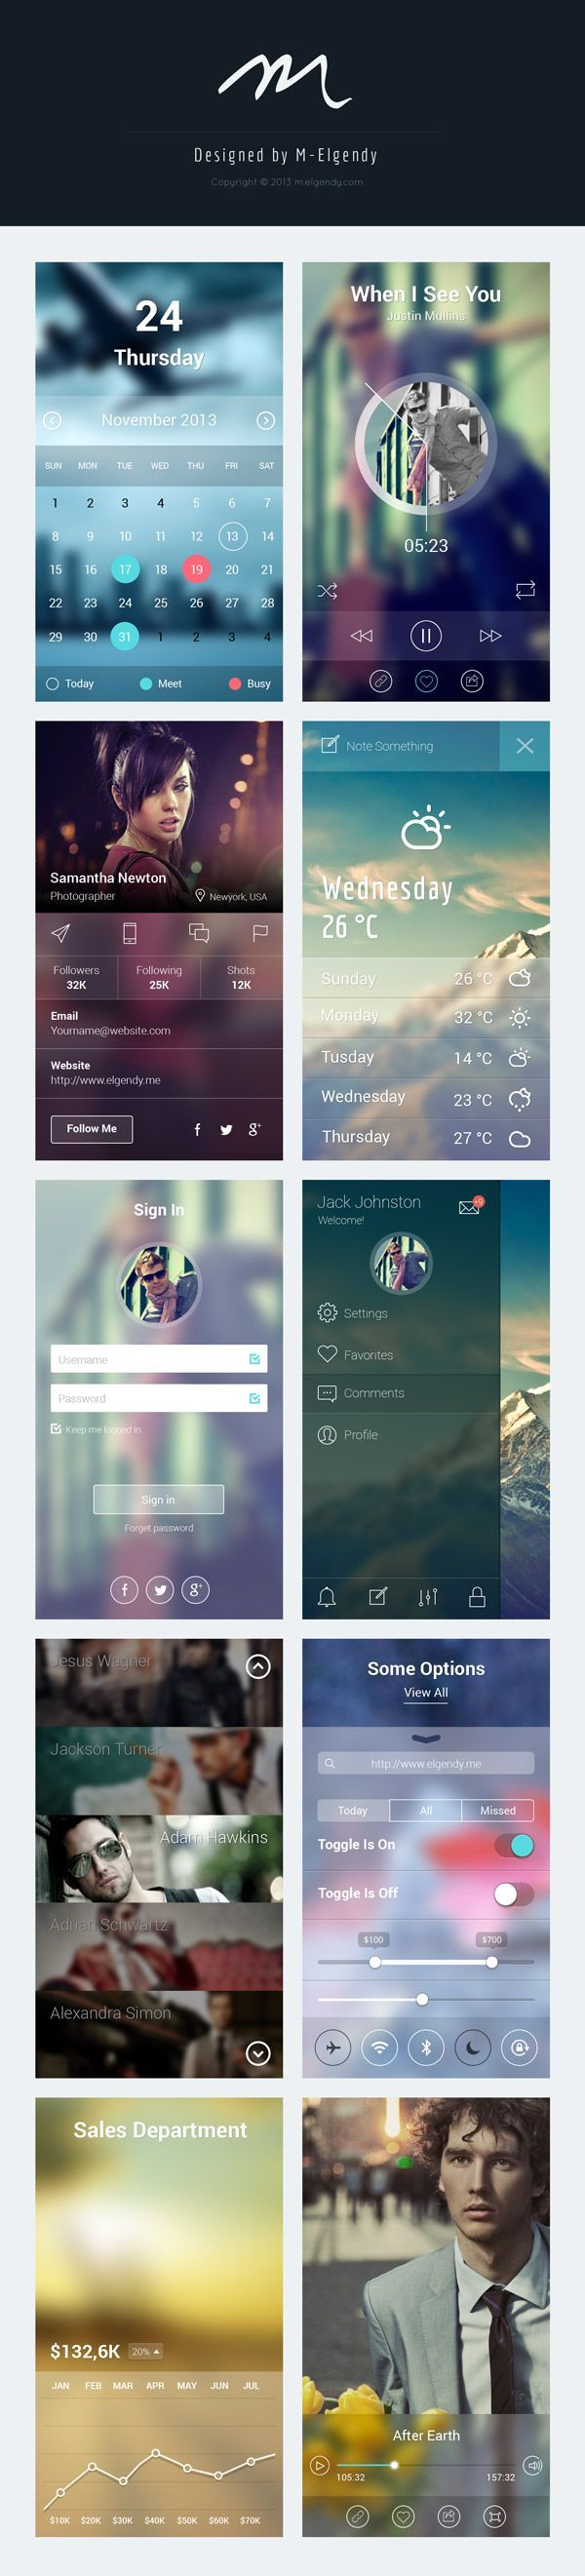 Blur app ui design - #calendar #profile #weather #signin #nav #charts